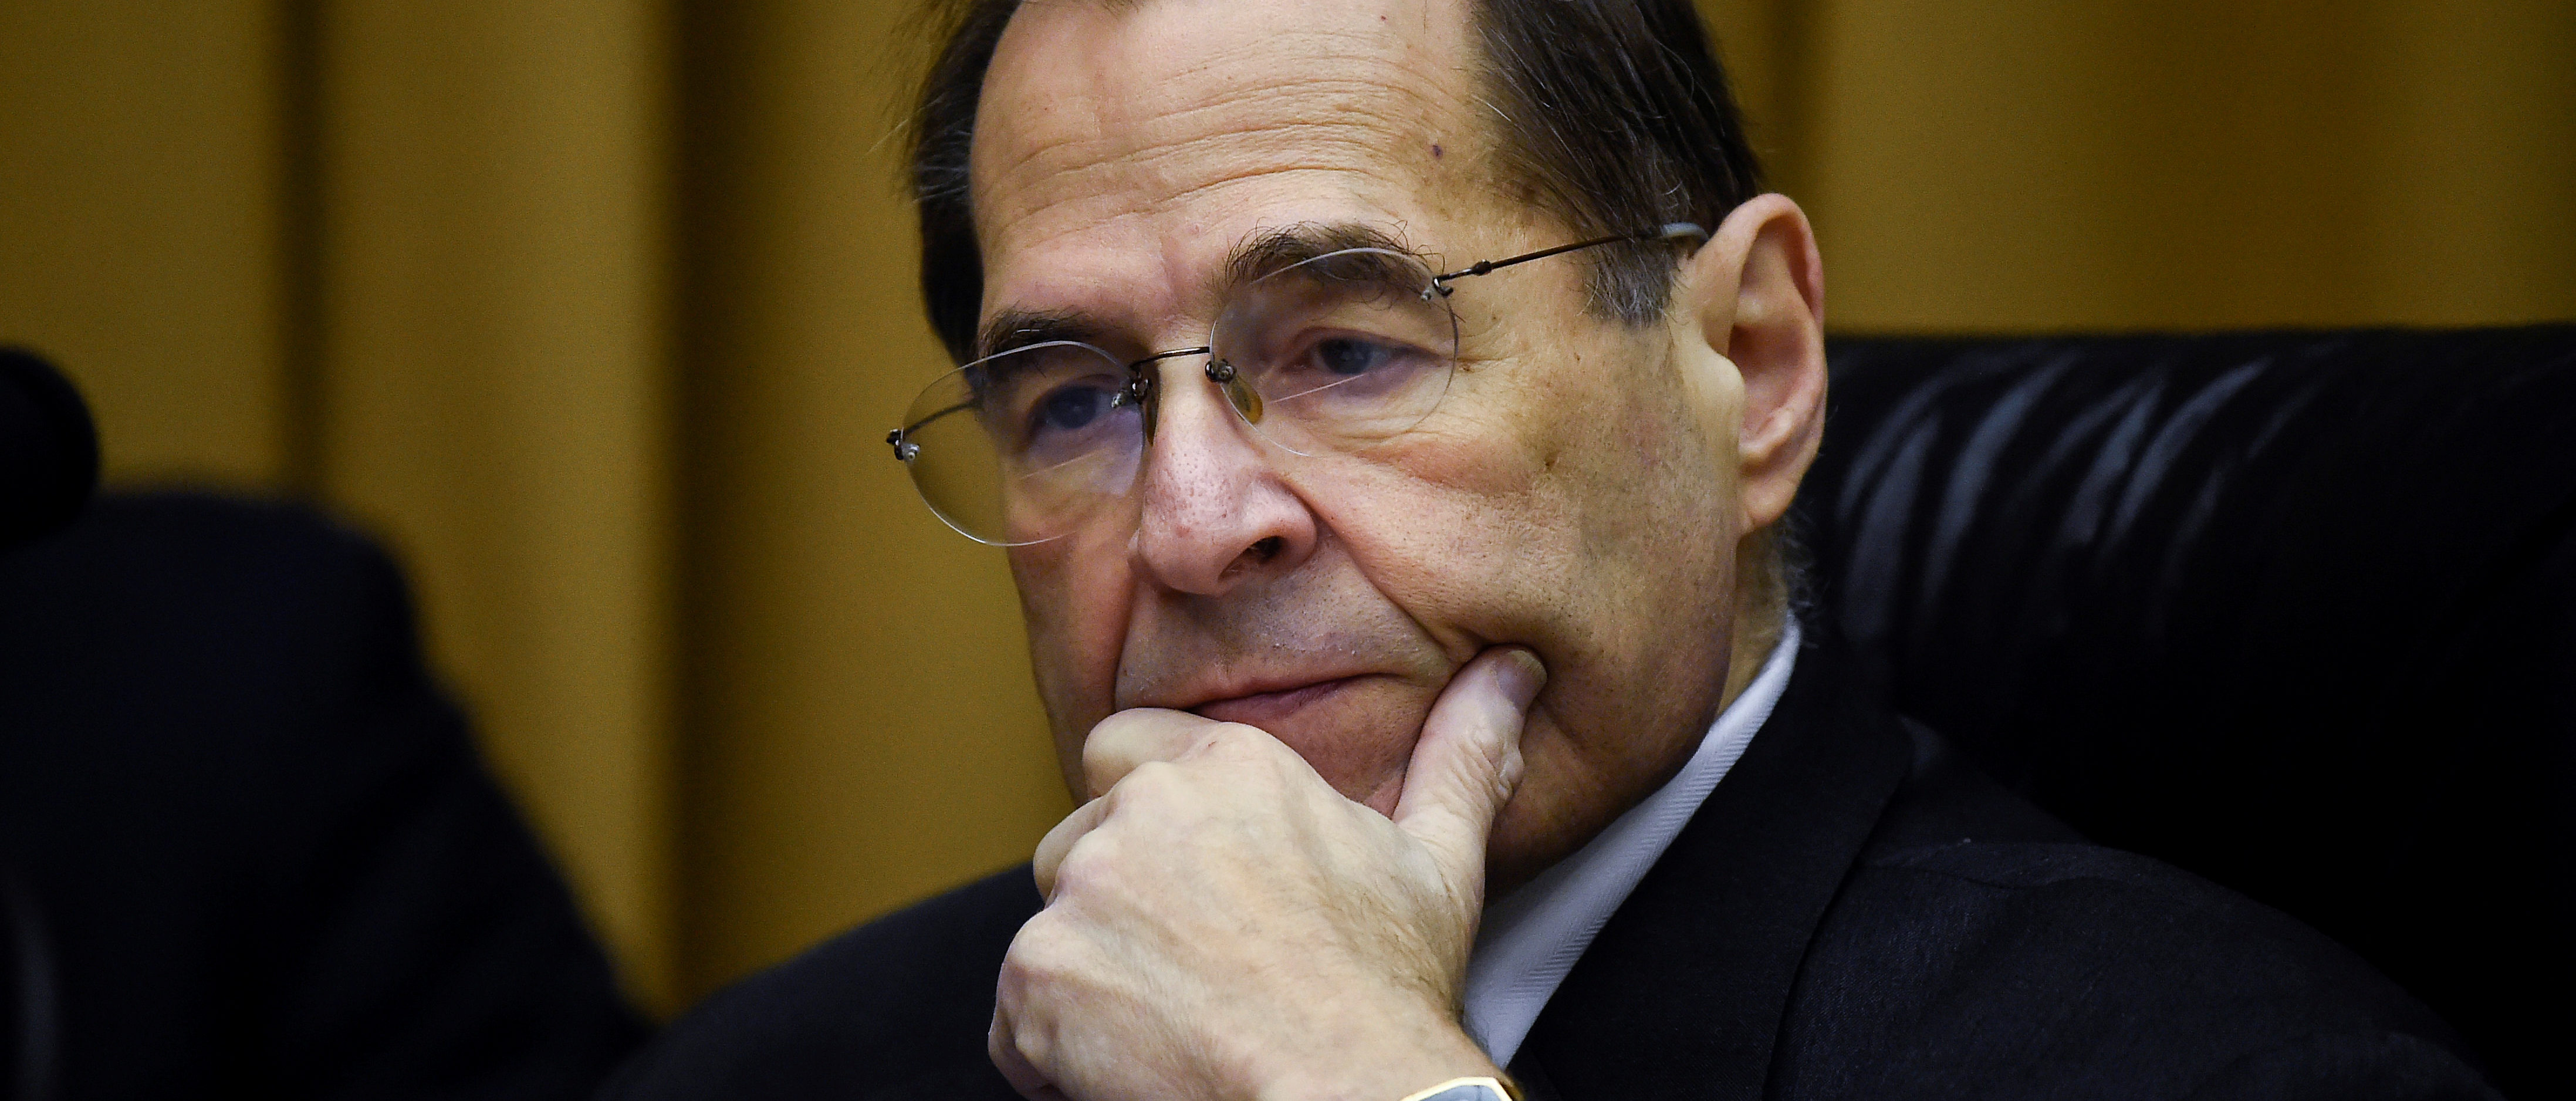 """House Judiciary Committee Chair Jerry Nadler (D-NY) chairs a House Judiciary Committee hearing on """"the Justice Department's investigation of Russian interference with the 2016 presidential election"""", that U.S. Attorney General Barr had been scheduled to appear at, on Capitol Hill in Washington, U.S., May 2, 2019. REUTERS/Clodagh Kilcoyne"""